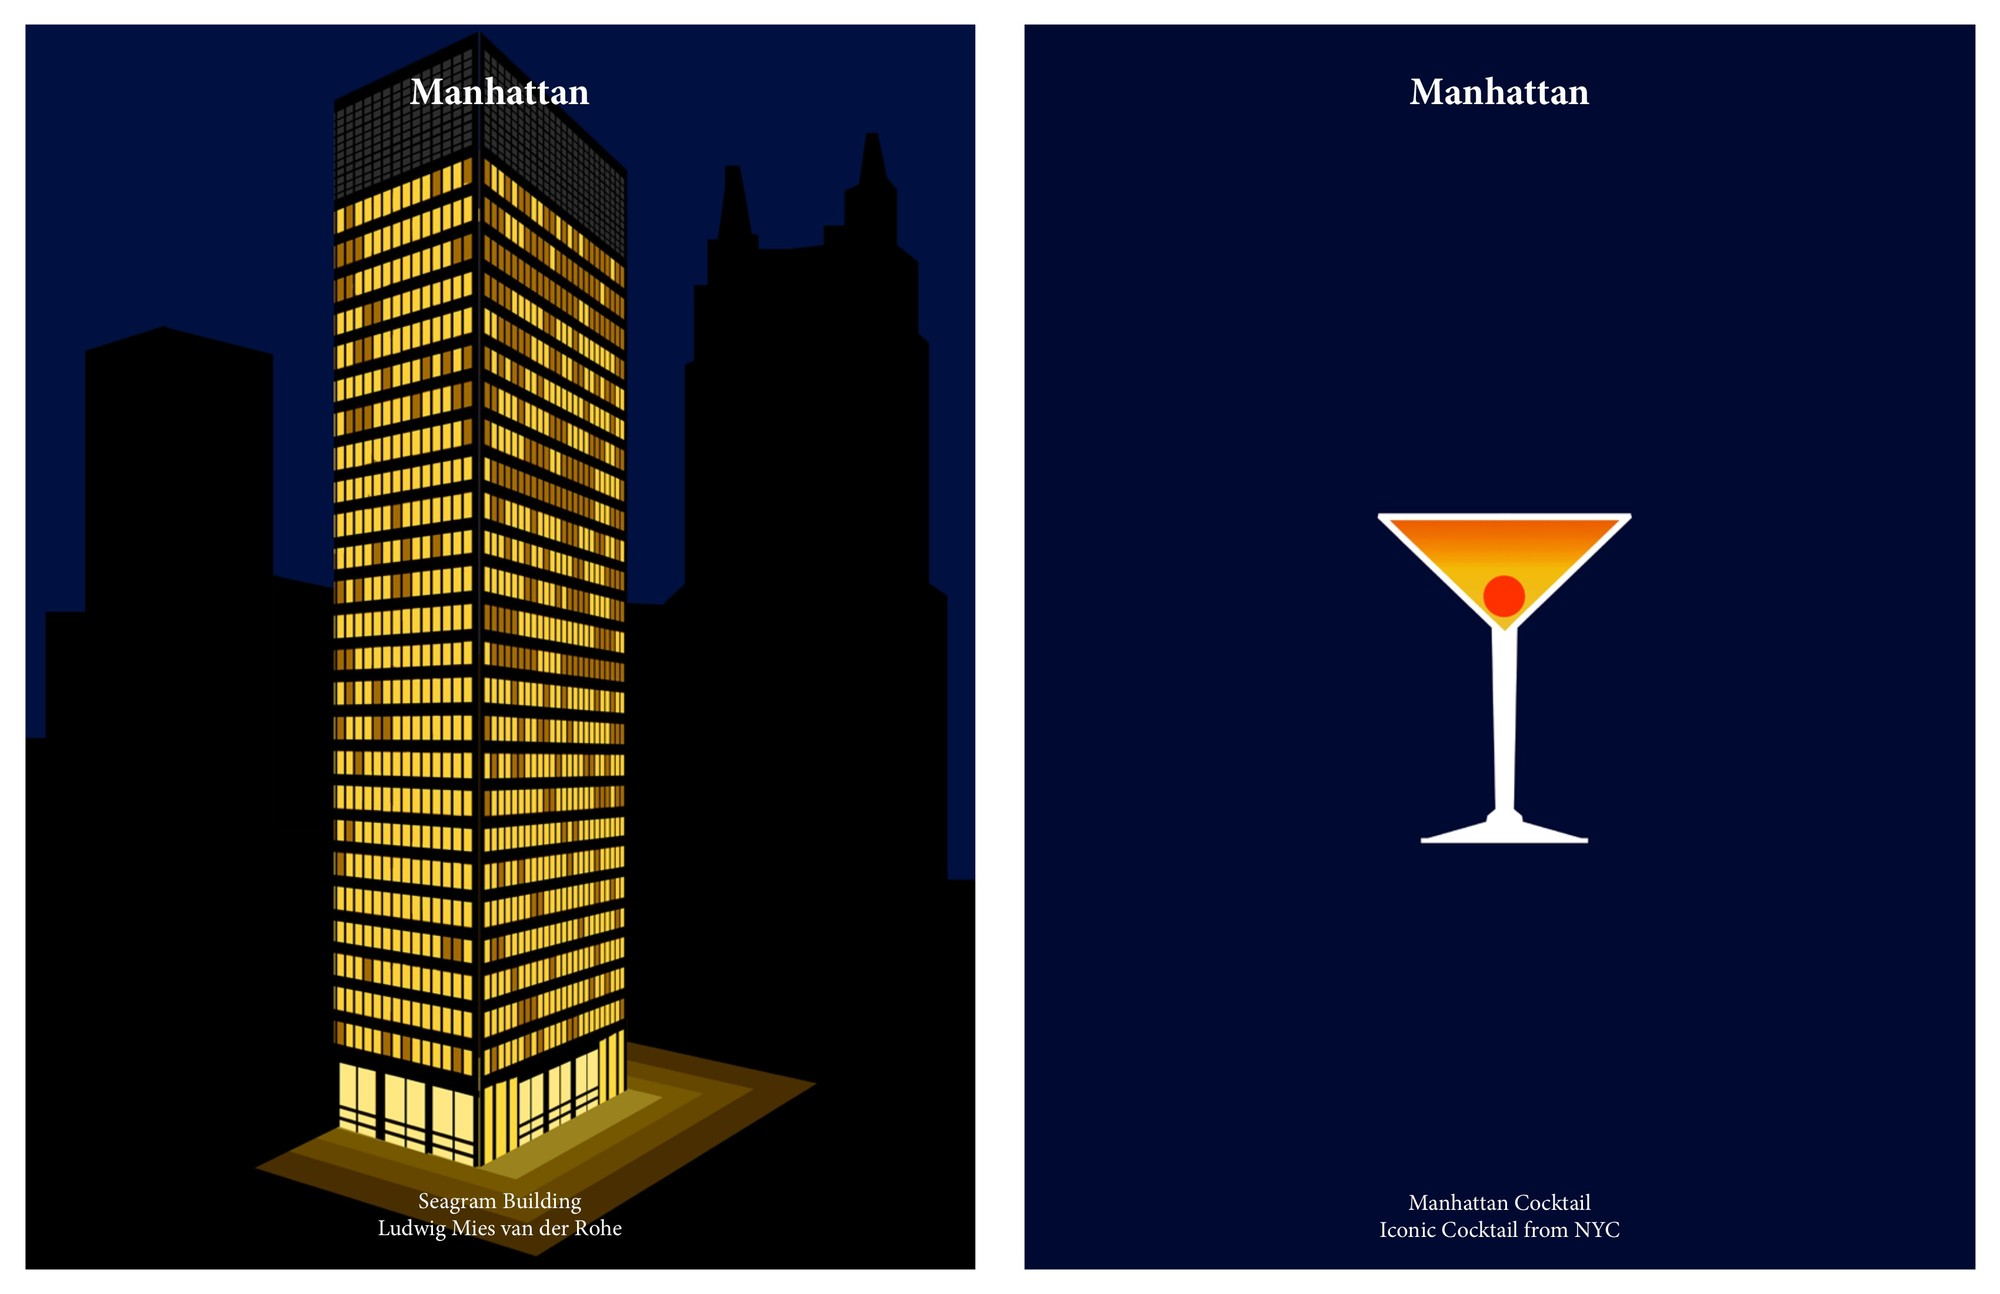 Beber como arquitecto: compara tu cocktail con el edificio perfecto, Edificio Seagram por Mies van der Rohe / Manhattan Cocktail. Imágen cortesía de Kosmos Architects